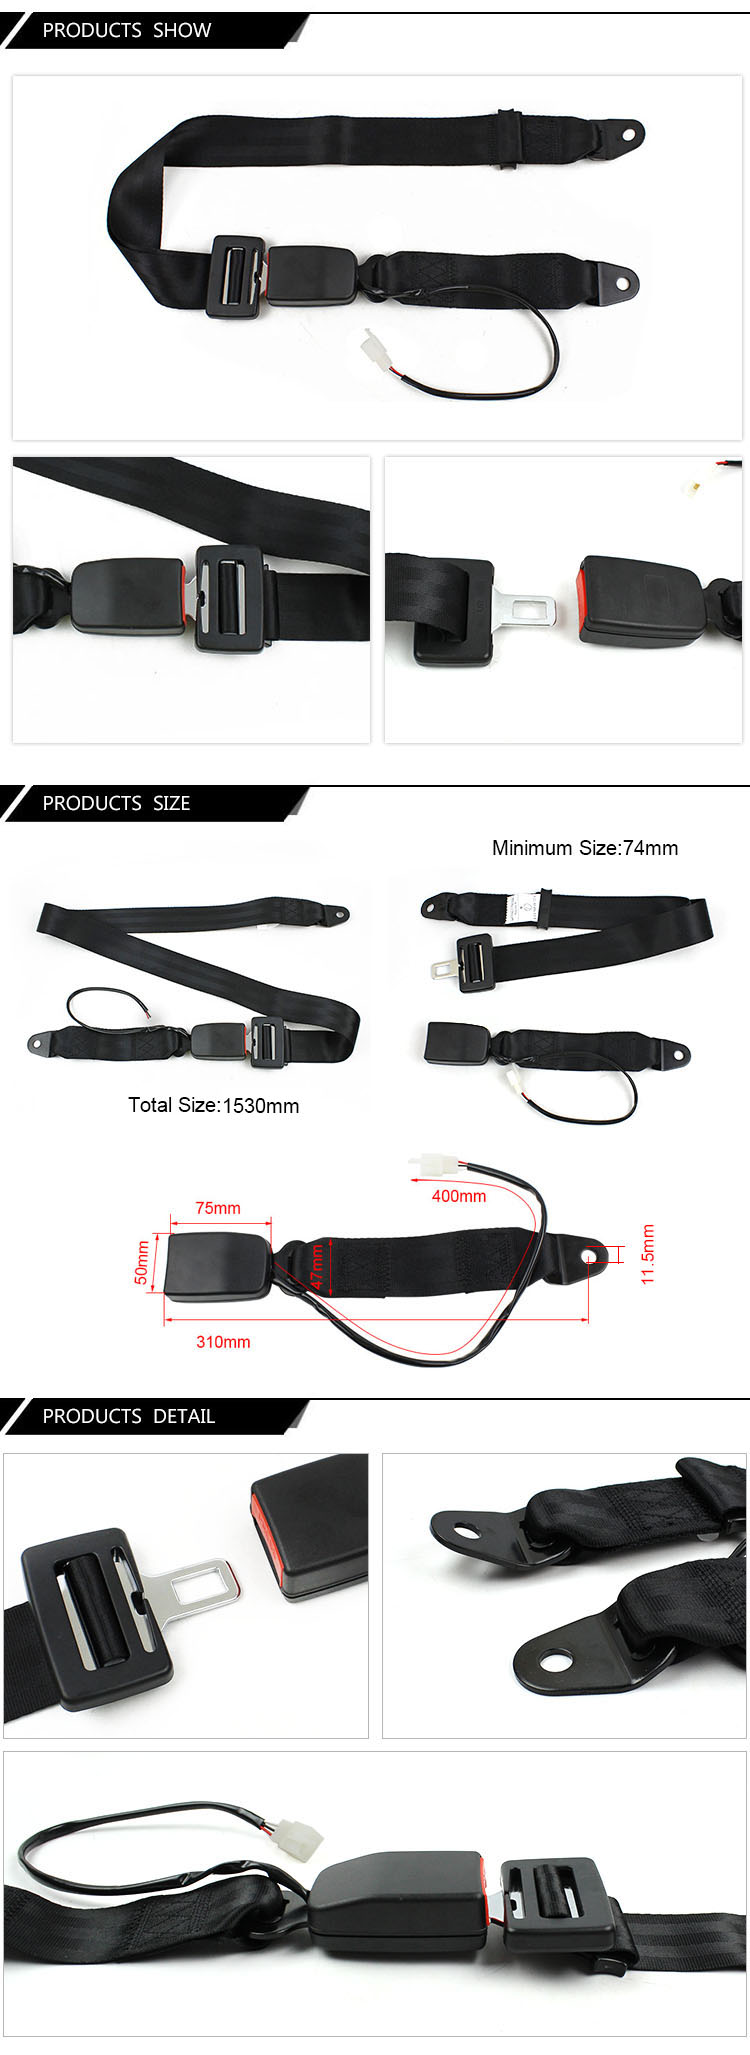 FEA007A Electric Car Safety Belt Accessories